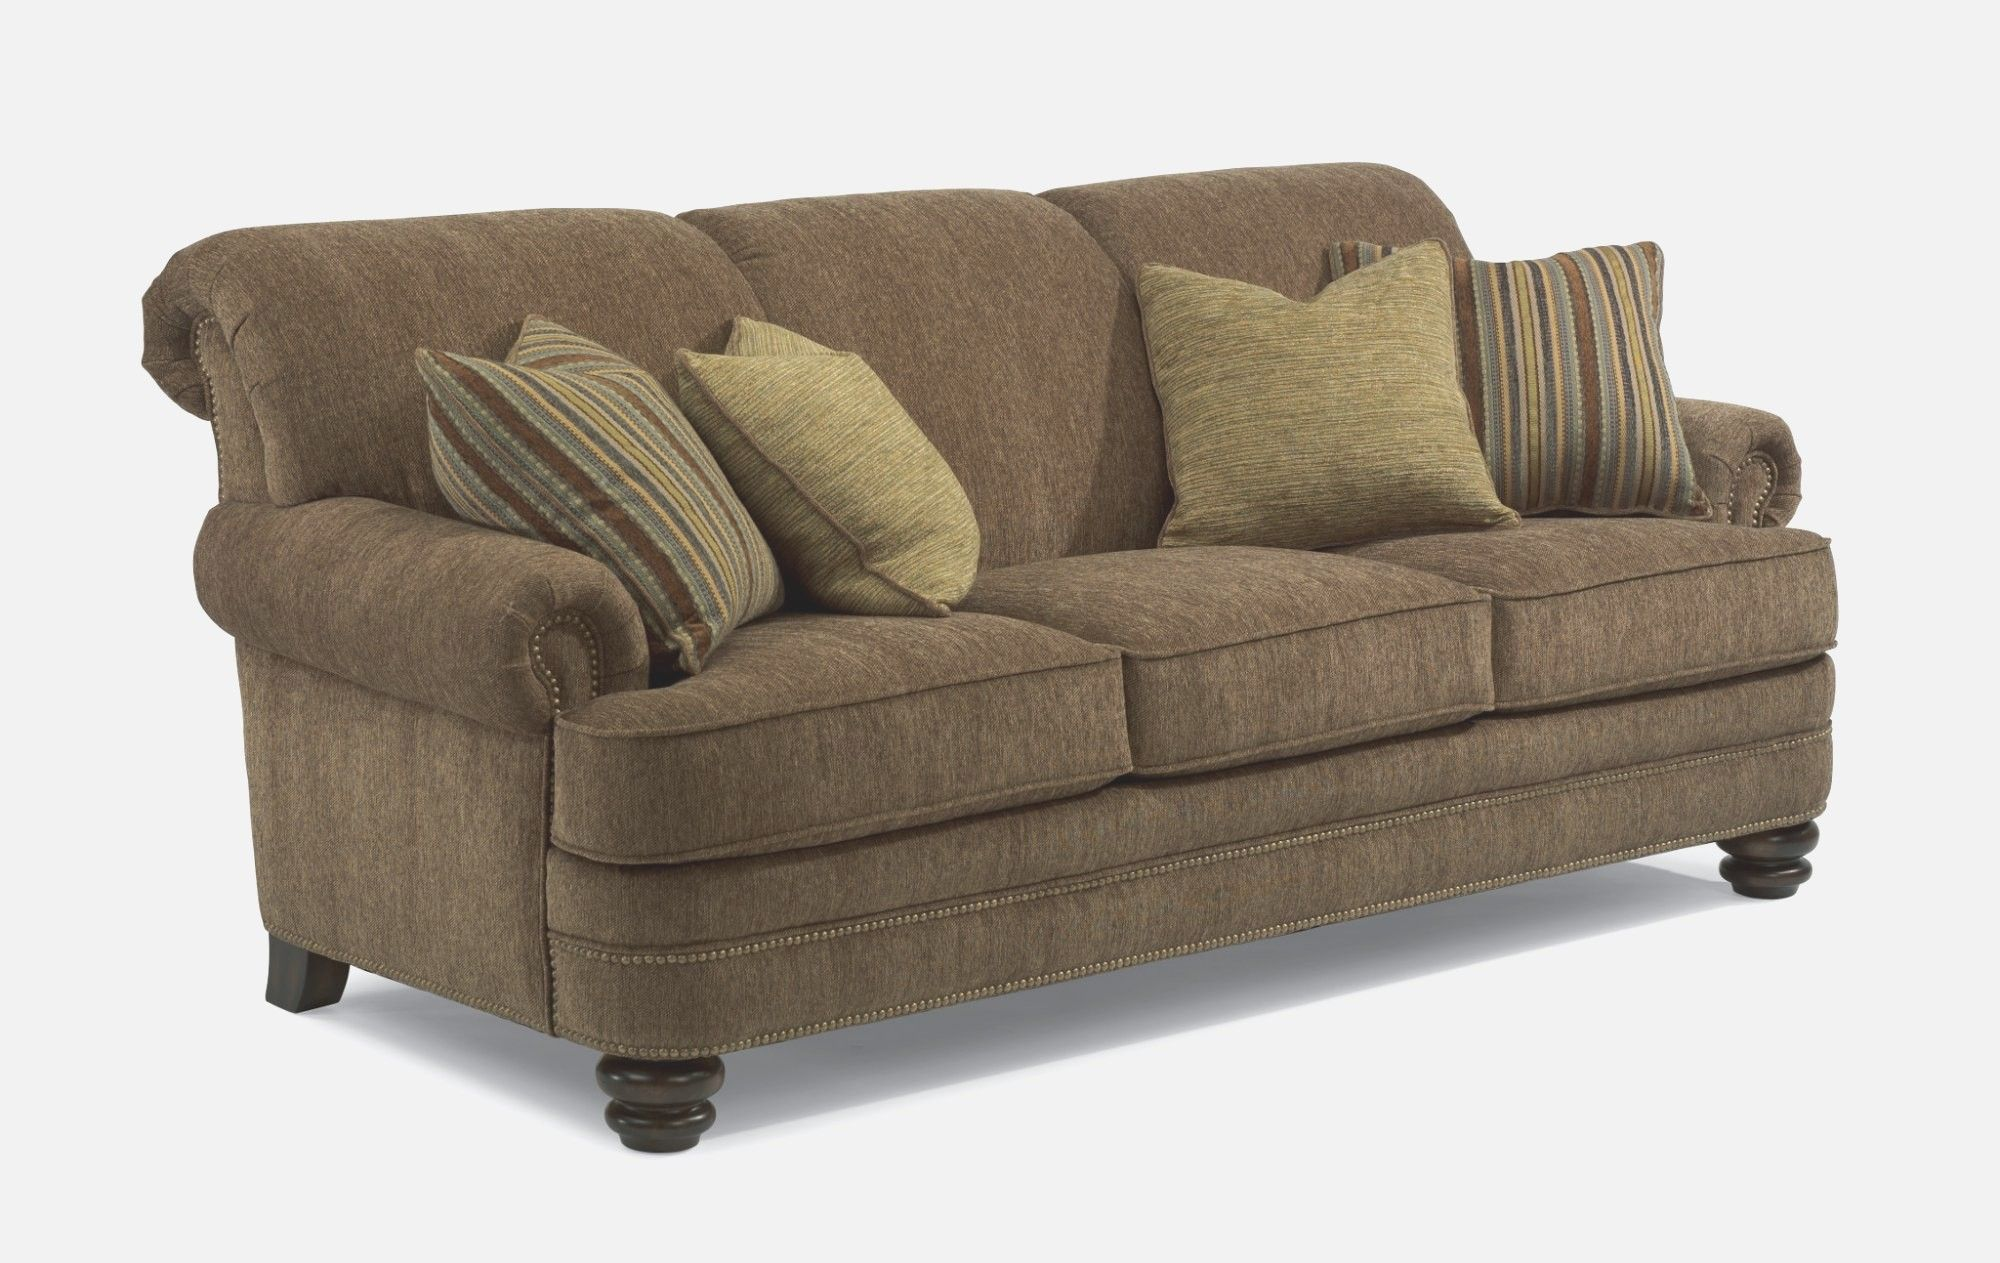 Cool Sofa Forts Sectional Leather Recliner City Fort Smith Ar Awesome